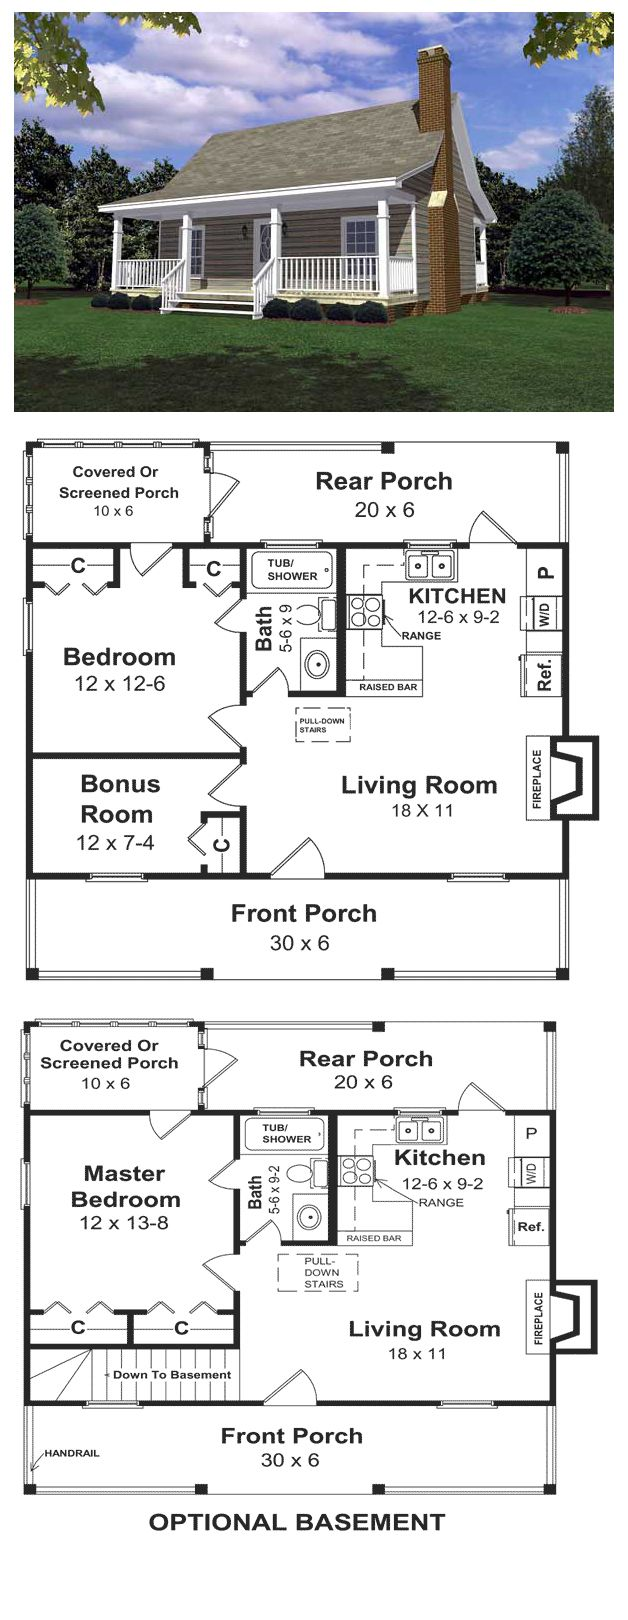 17 best images about floor plans on pinterest dome homes cabin and cottage floor plans - Summer house plans delight relaxation ...